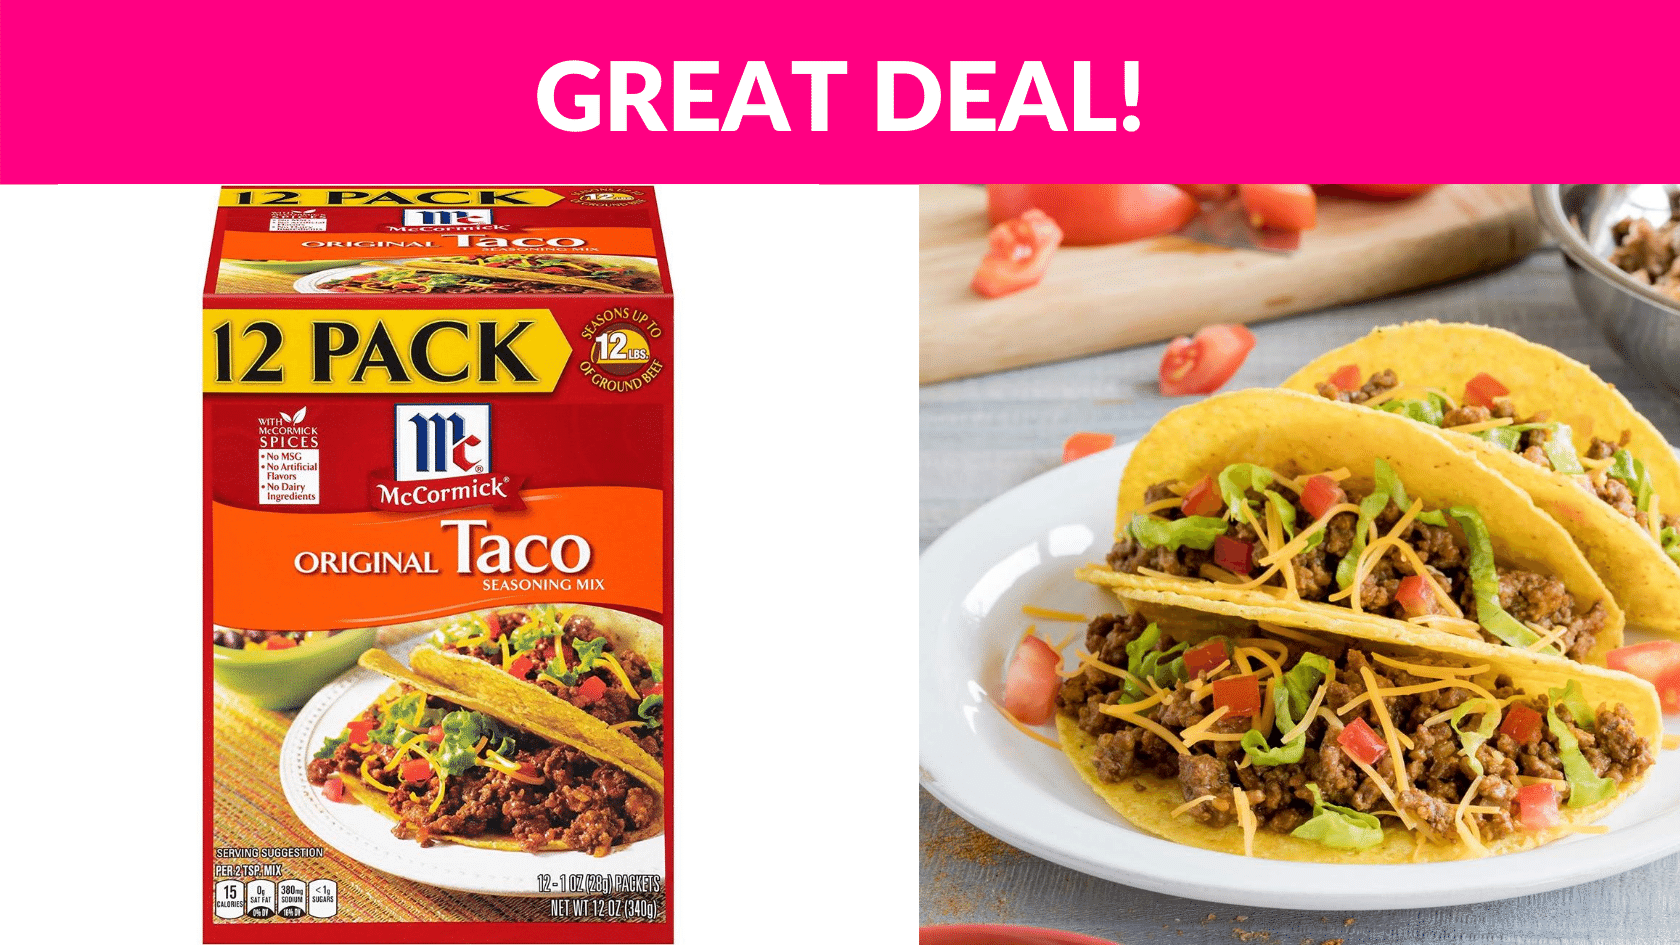 Mccormick Original Taco Seasoning Mix 12 Pack Free Samples By Mail